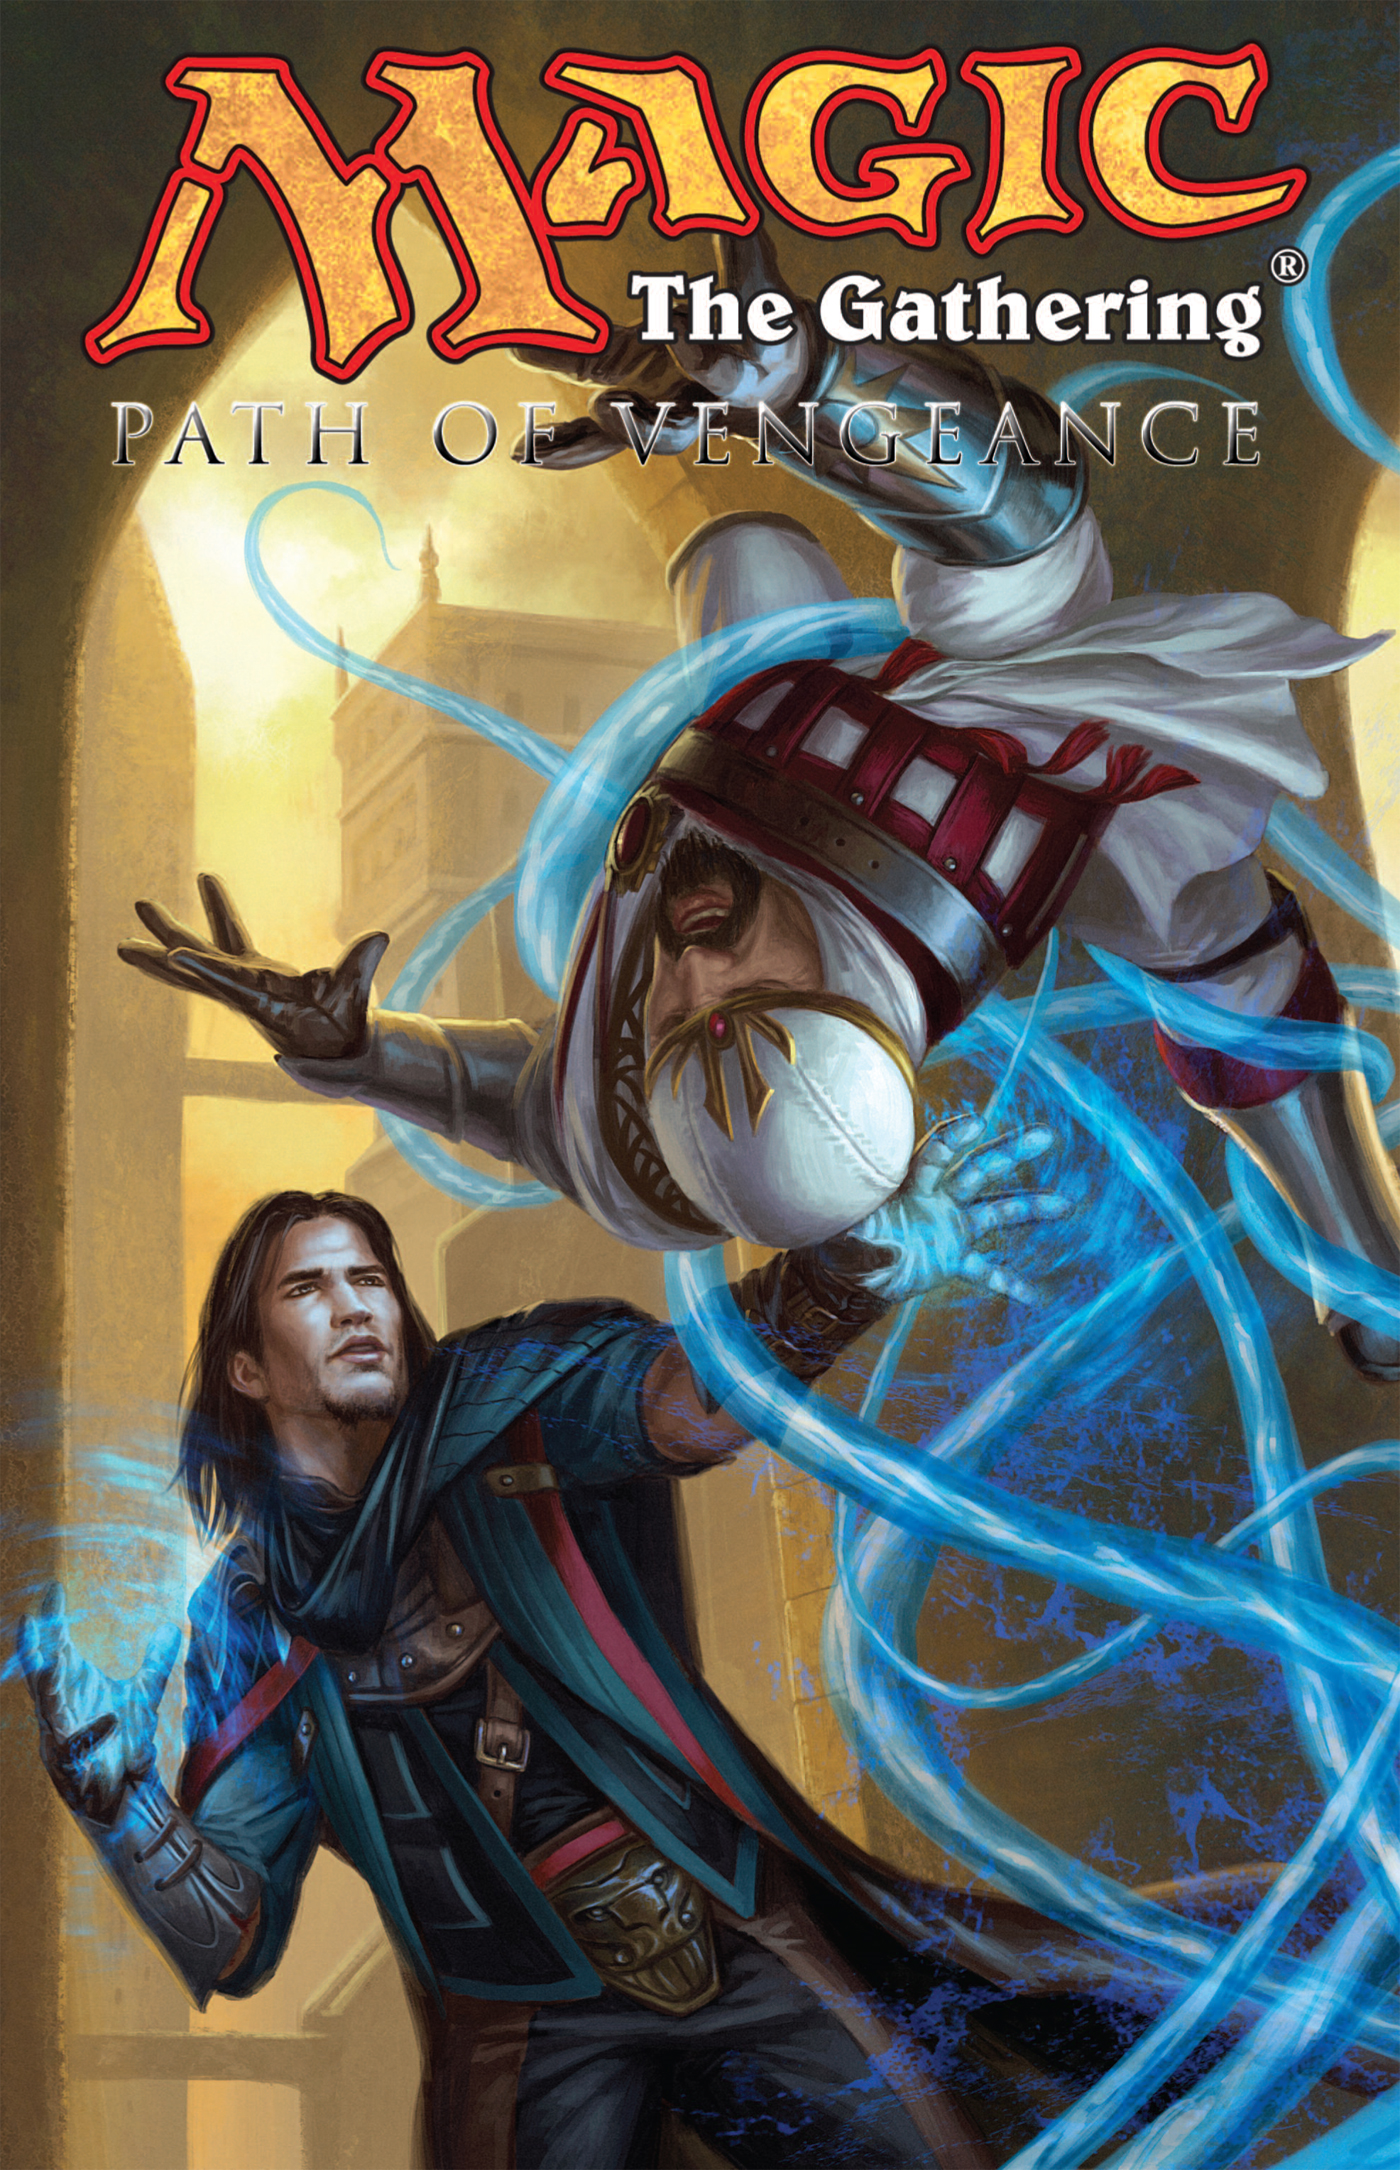 Magic the Gathering: Vol. 3 - Path of Vengence